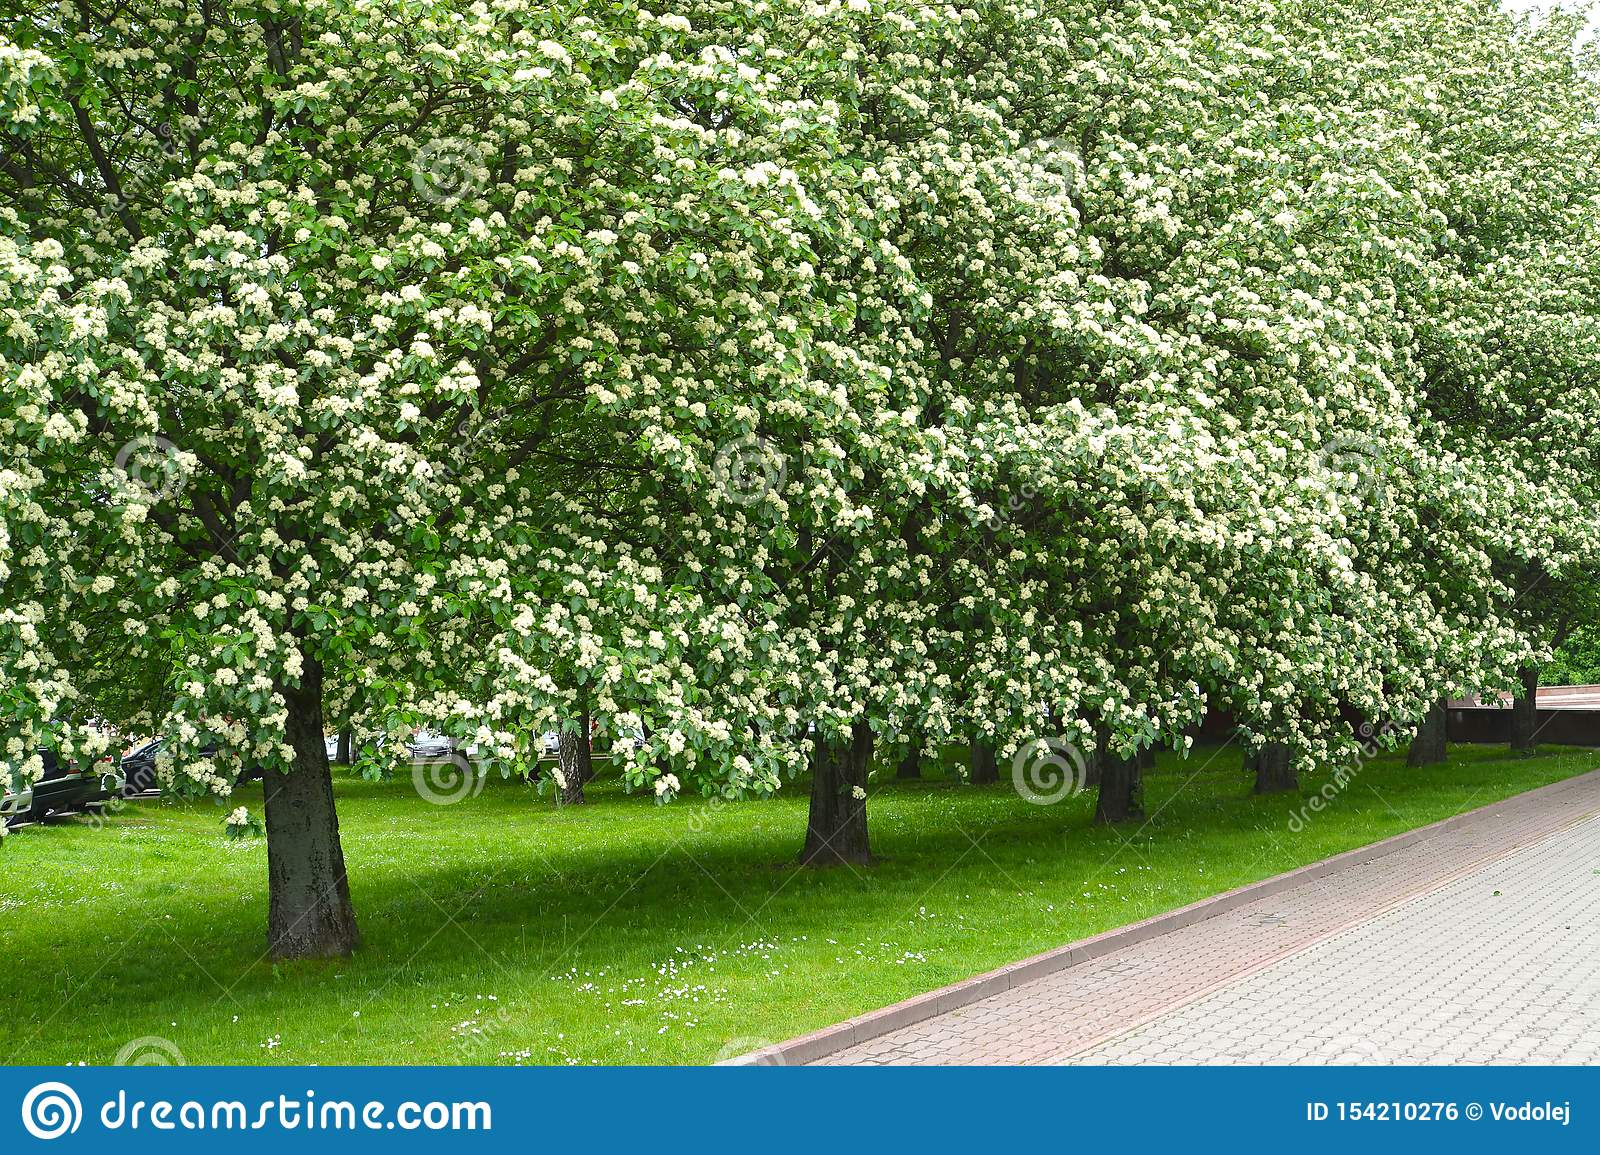 The avenue of the blossoming trees of a mountain ash Scandinavian Sorbus intermedia Ehrh. Pers. Spring